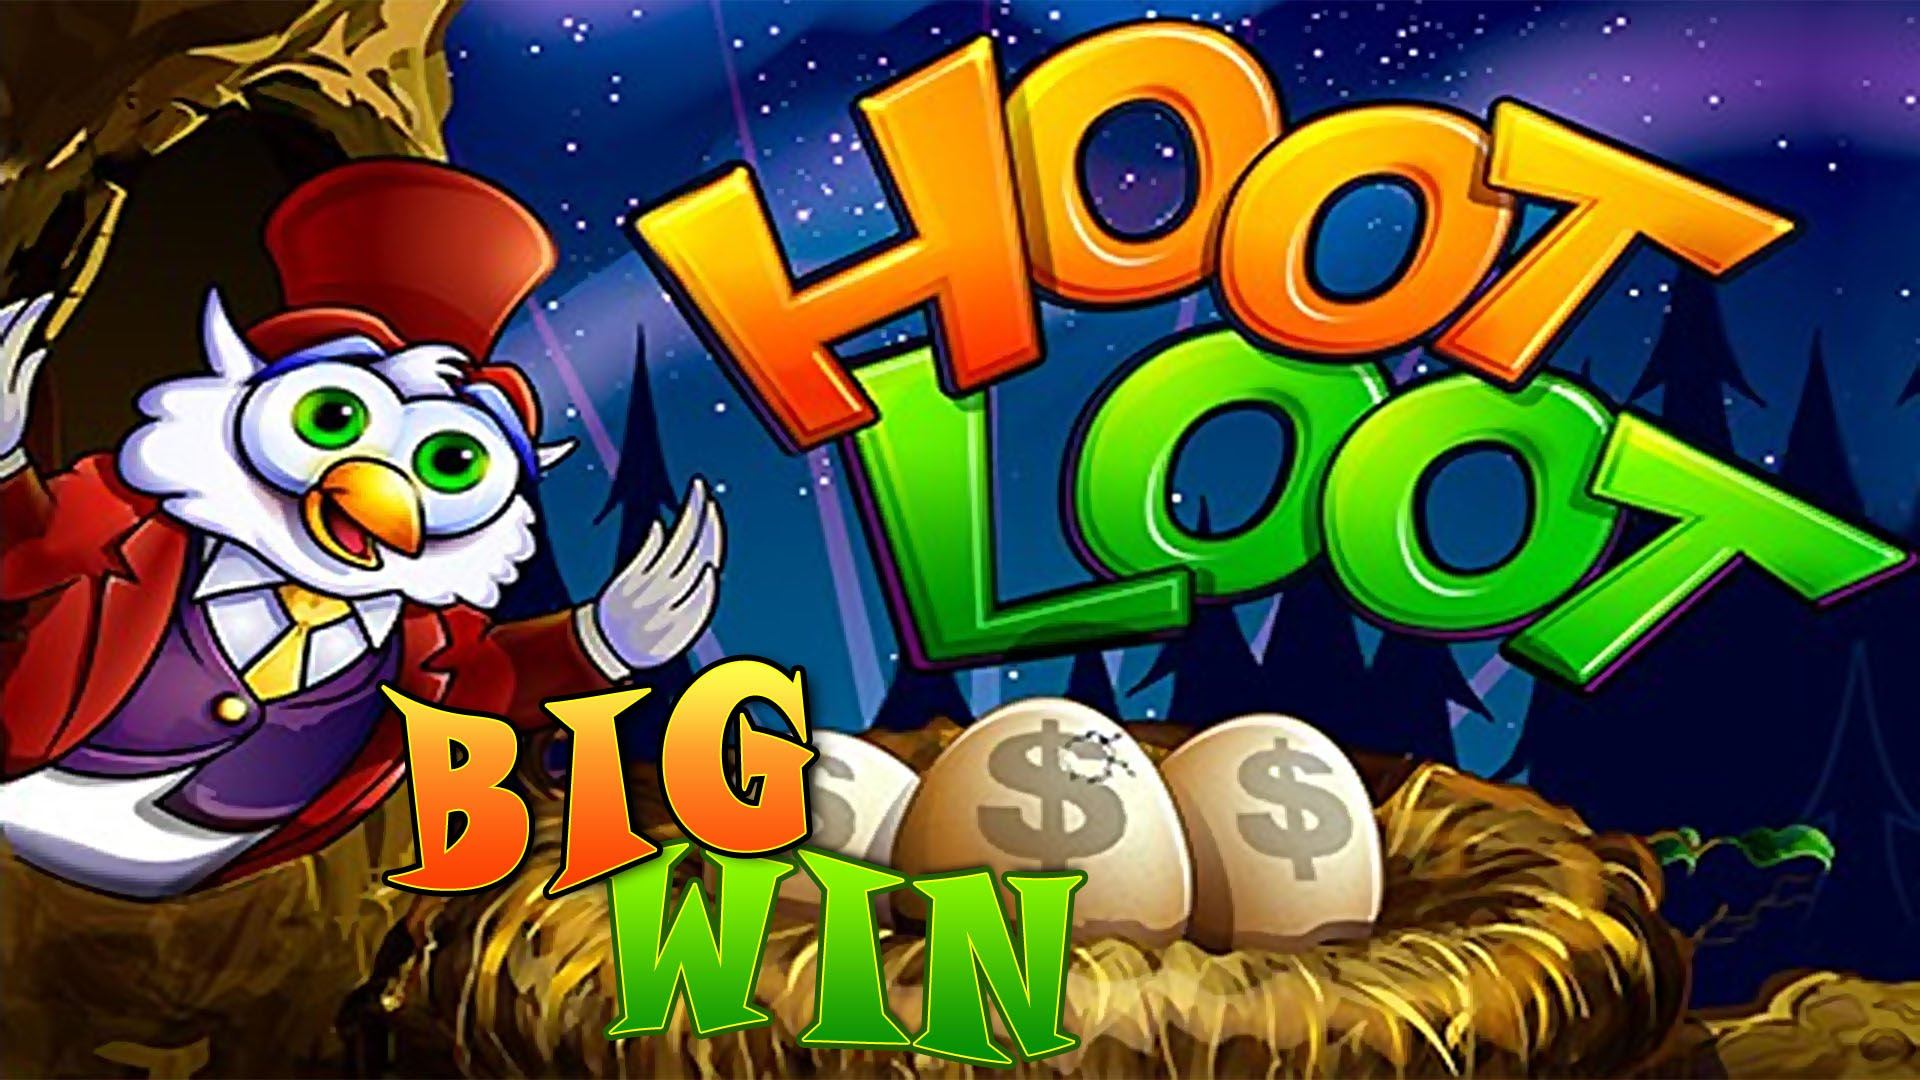 Hoot Loot slot – An adventure in the forest